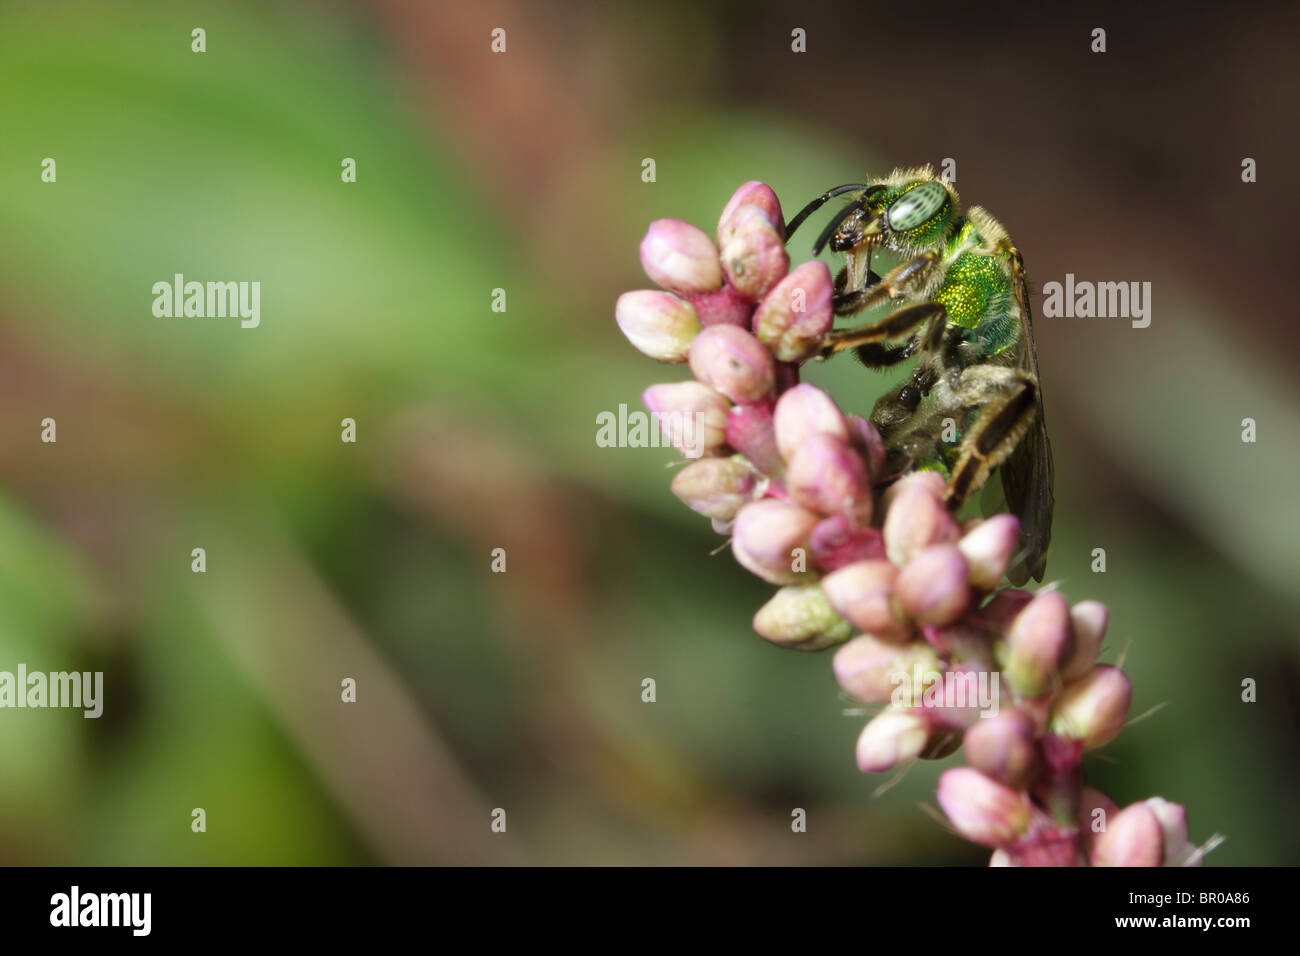 A green metallic bee (Agapostemon) preens on the tip of a flower. - Stock Image